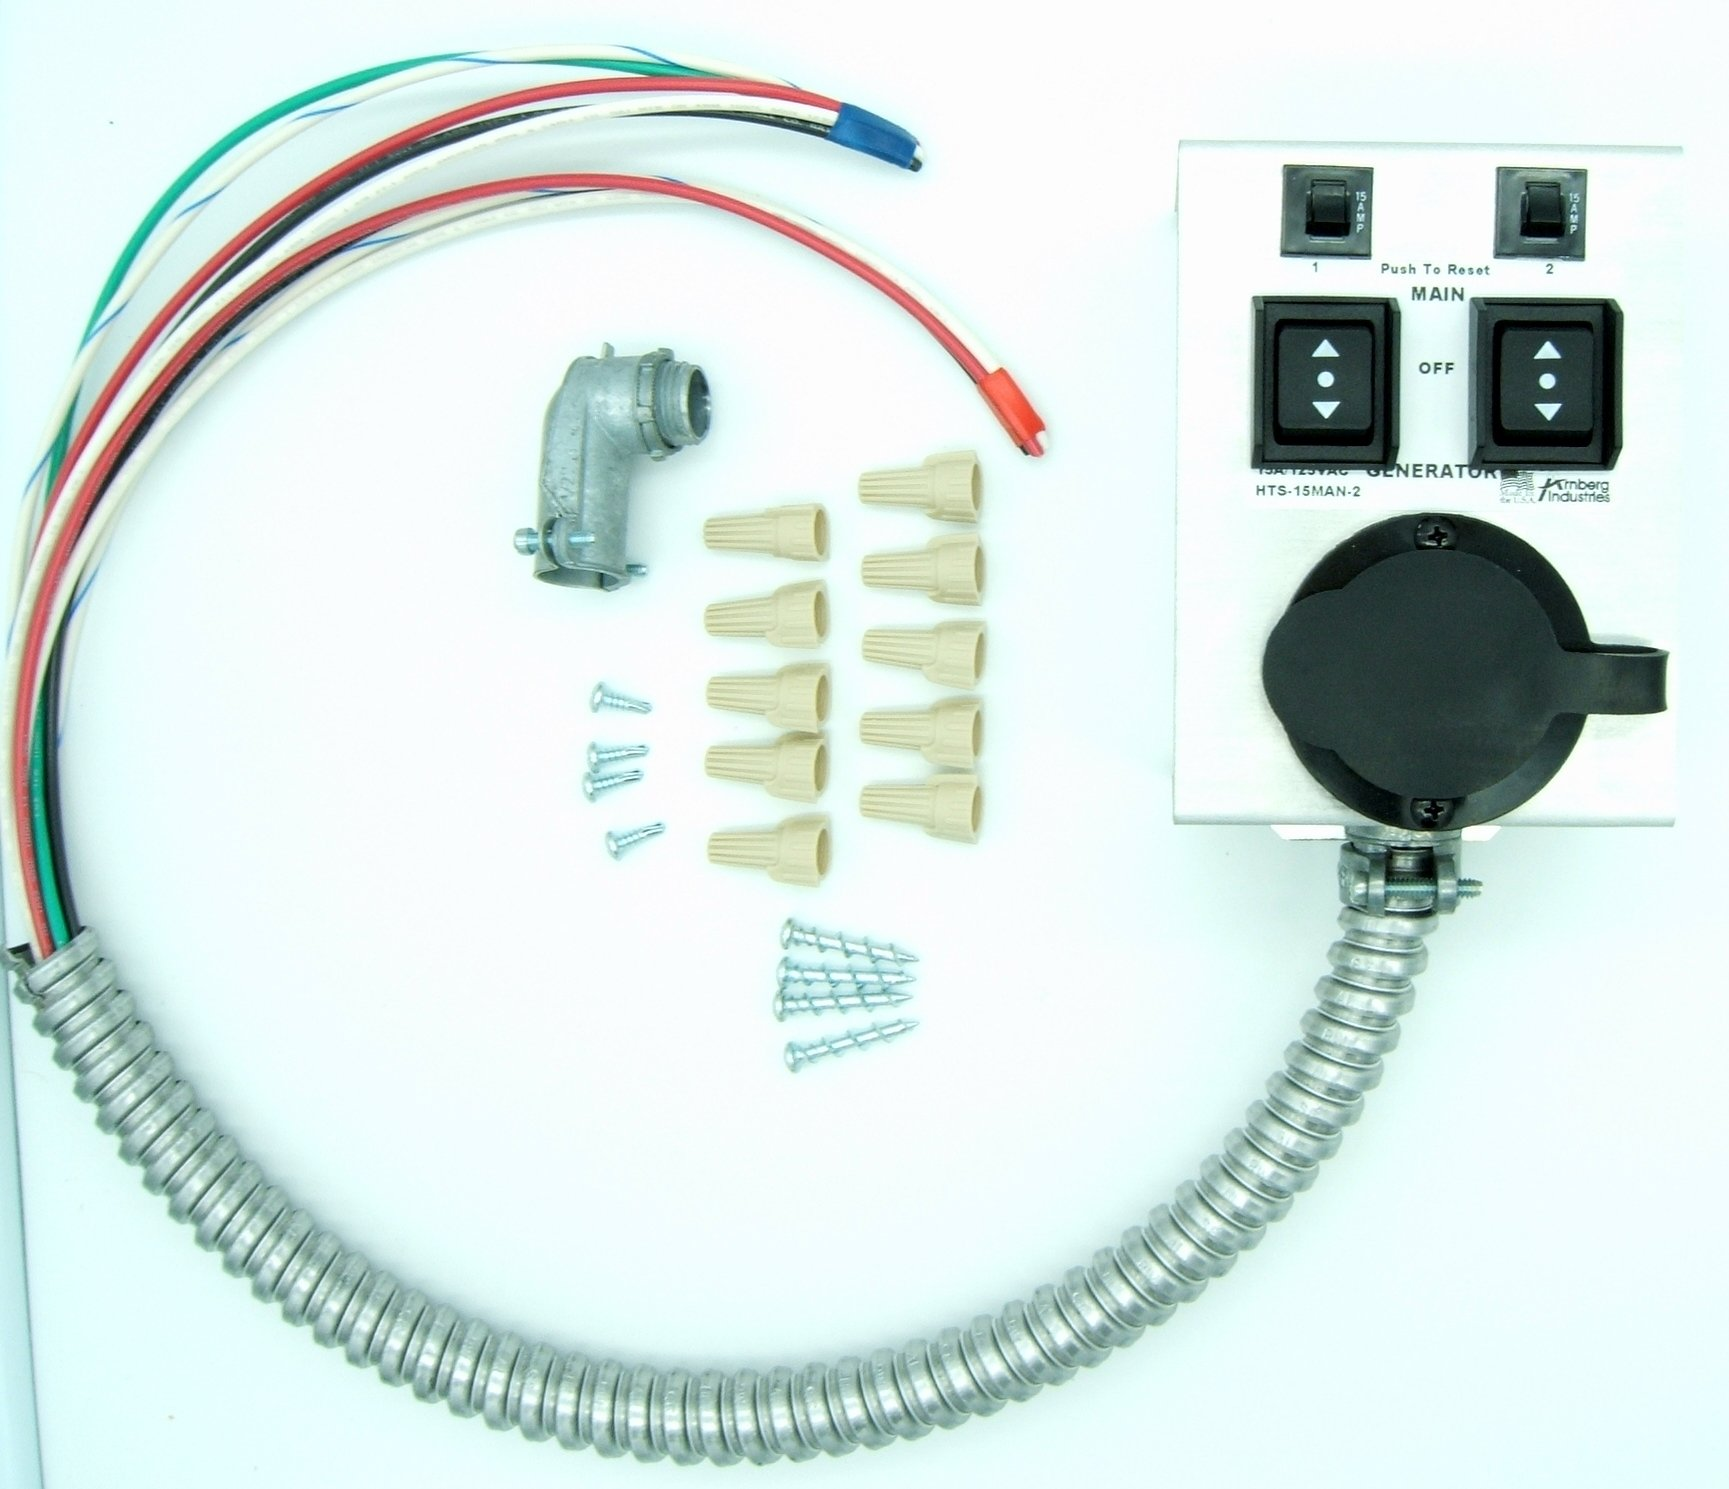 Generator Transfer Switch 2 Circuit For Gas Furnace Sump Pumps How To Install A Easy Diy Universal Kit Manual Use 110v 120v1875 Watts15 Amp Power W 3 Way